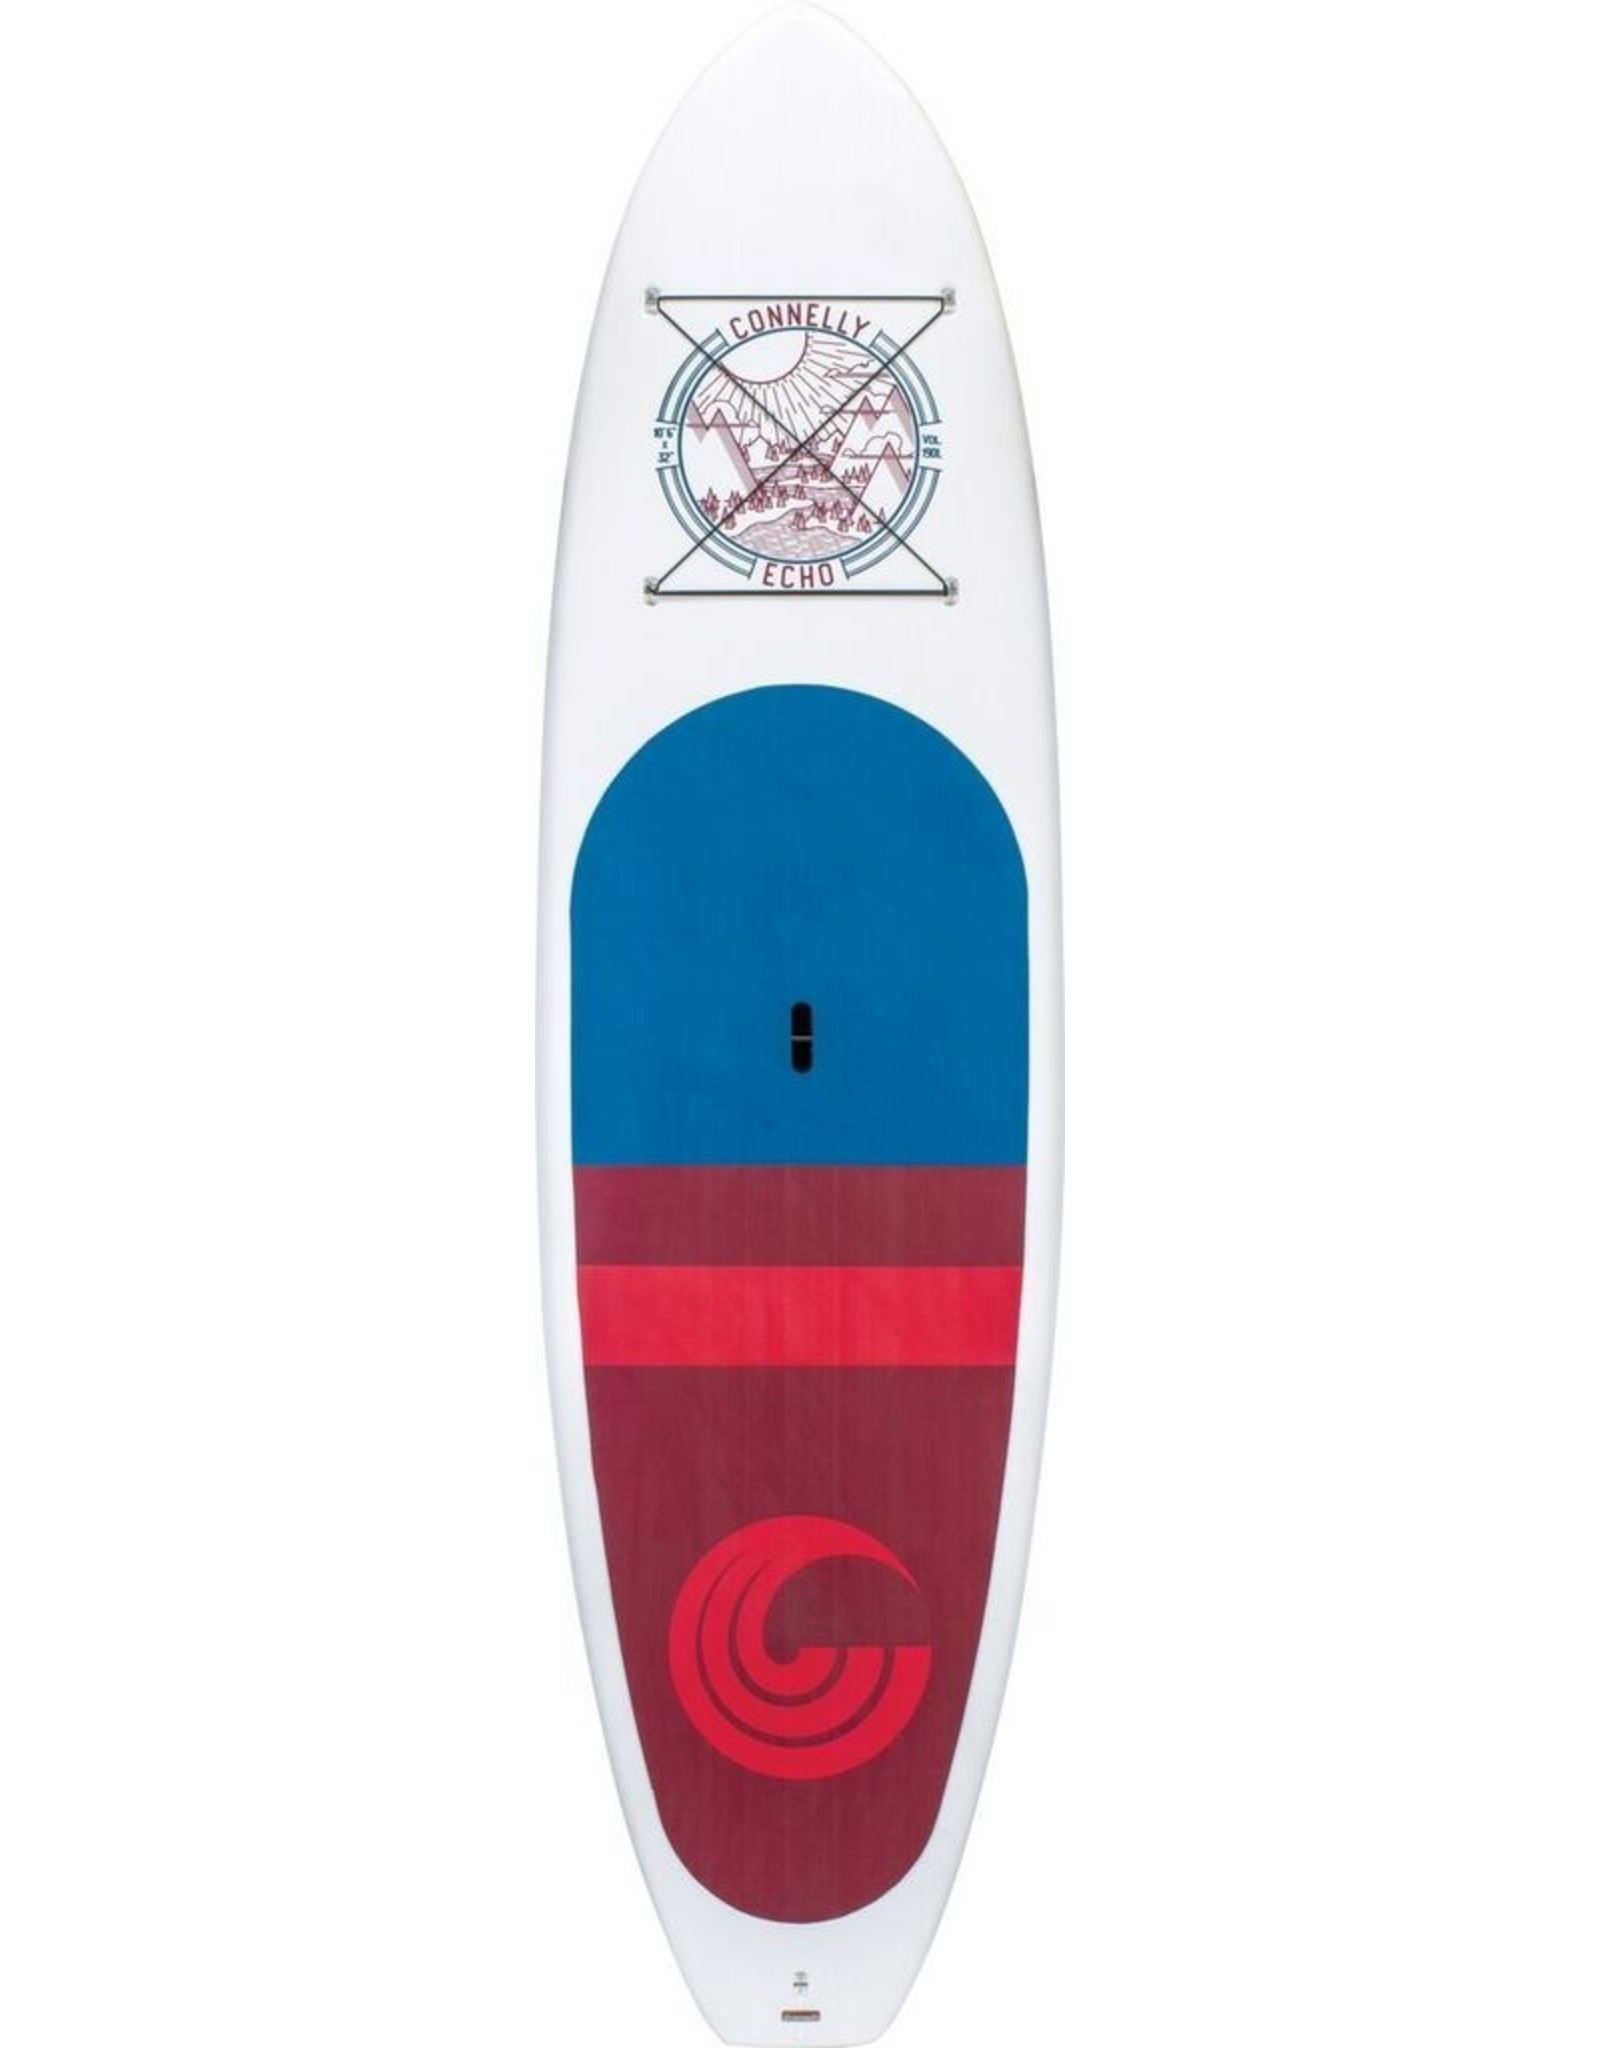 "Connelly 10'6"" ECHO SUP BOARD"